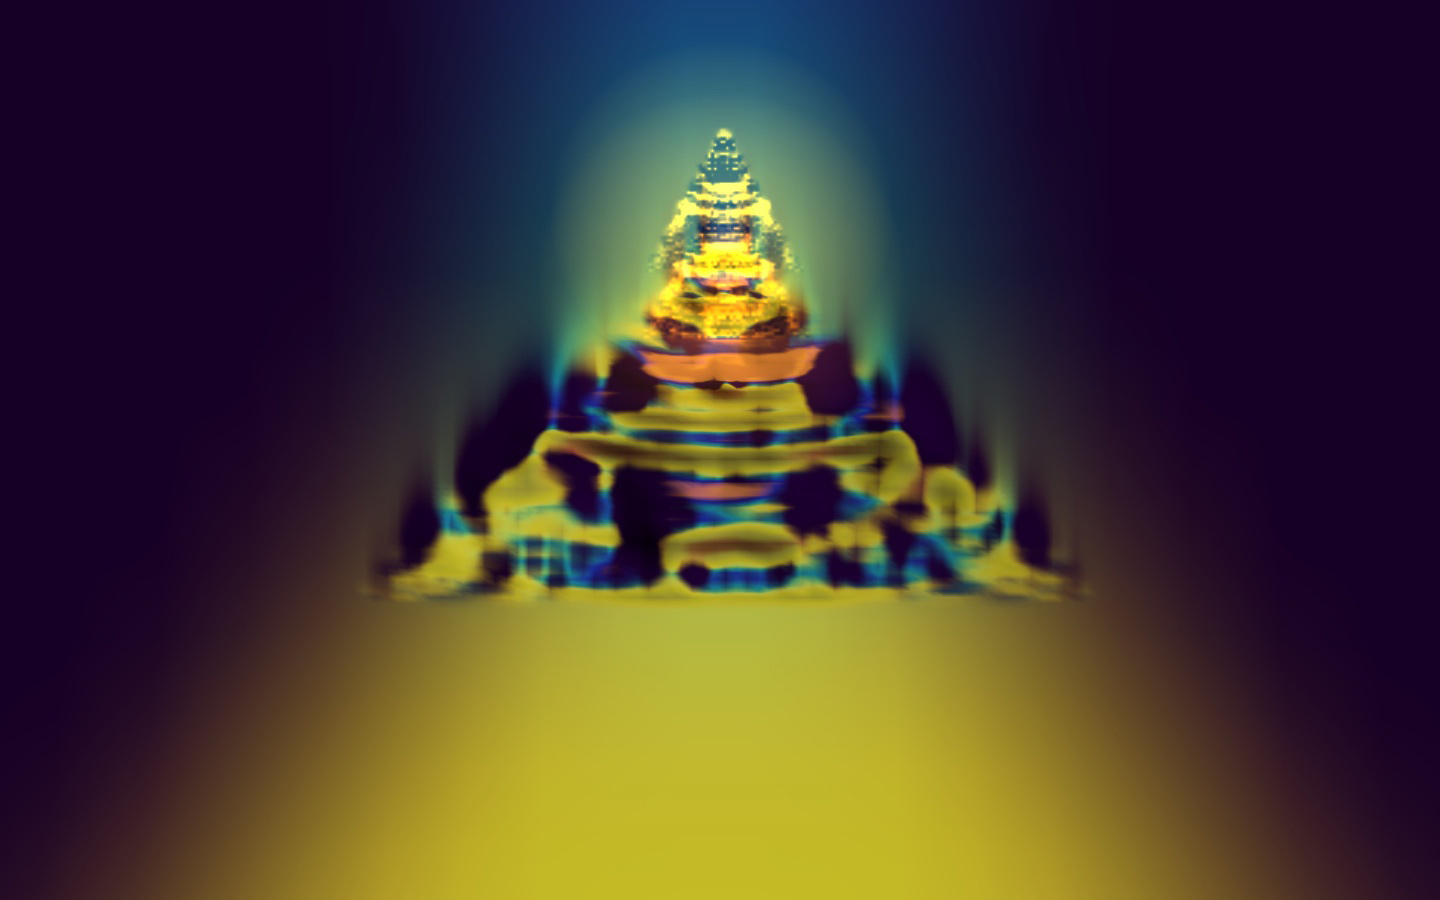 The 108 Harmonic Visions series: Buddha Light 1 © David Hykes 2011 all rights reserved